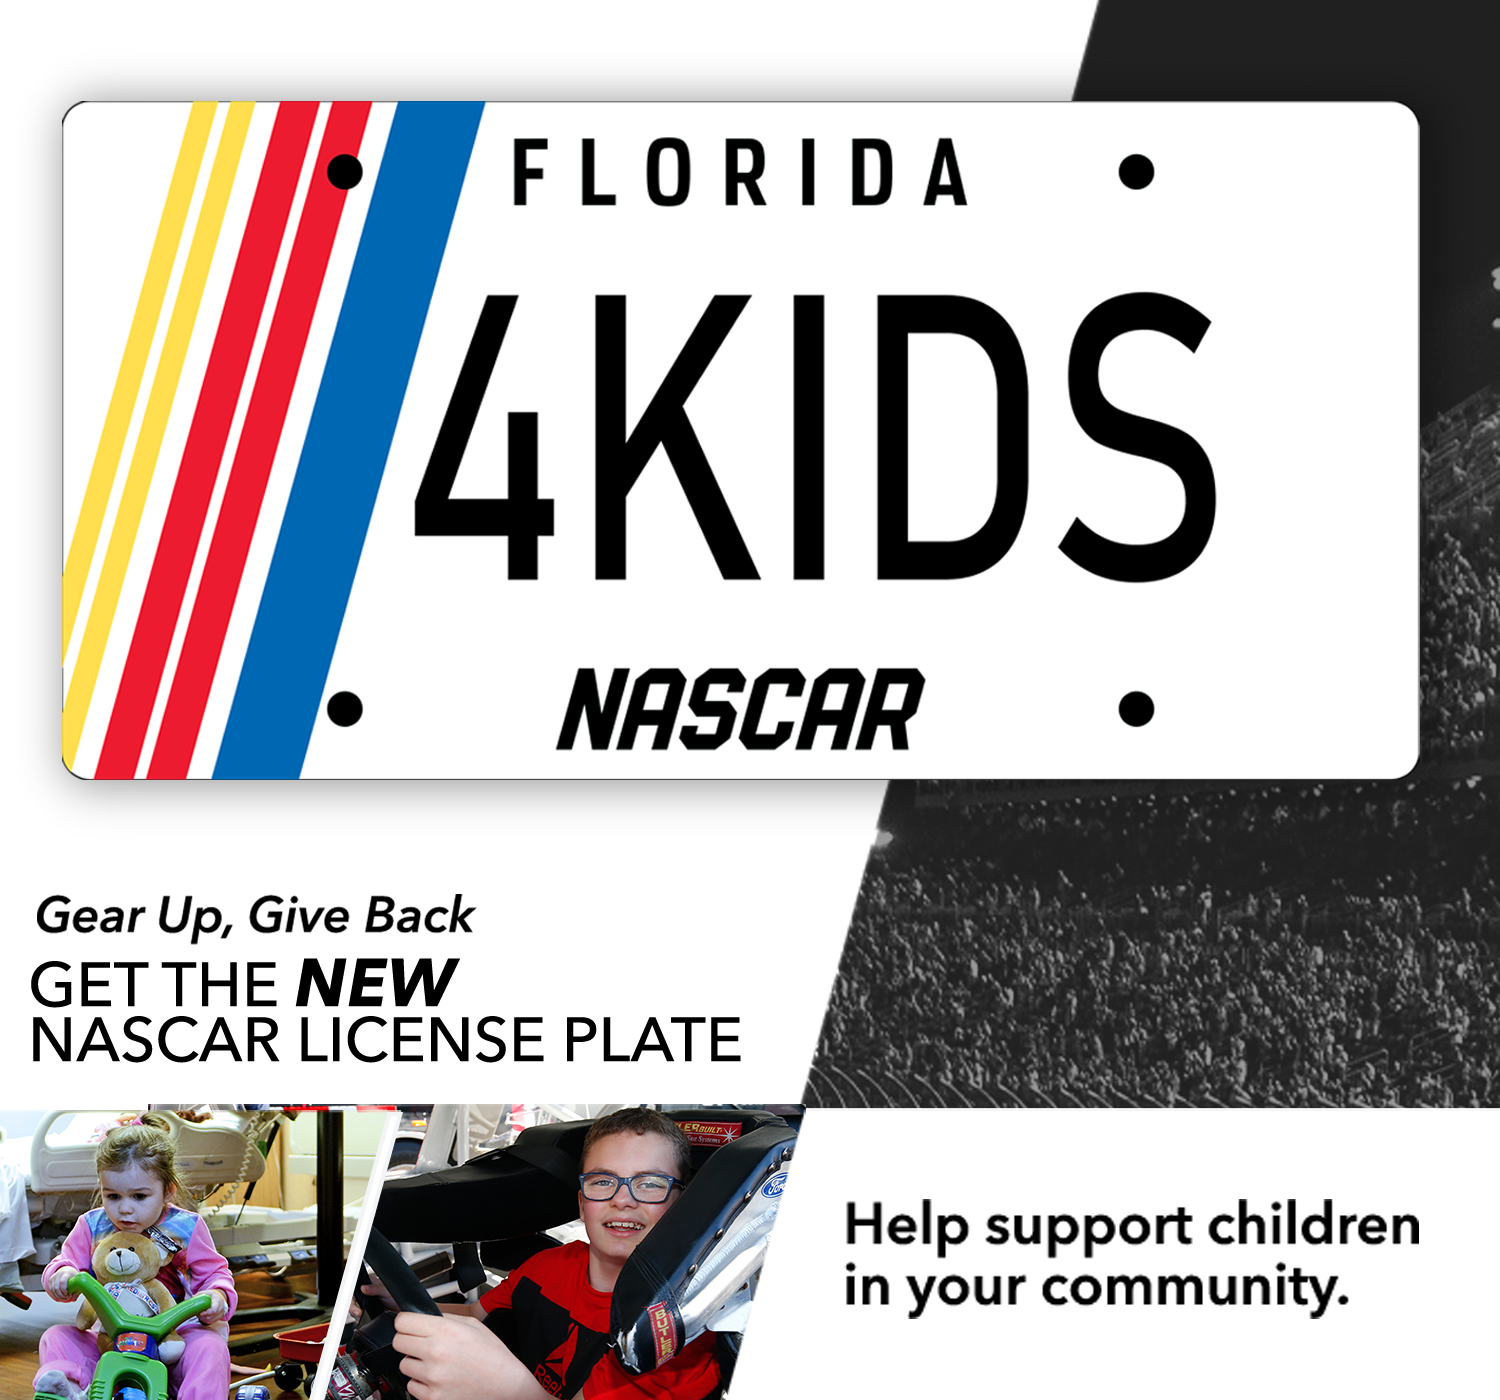 Gear up, Give Back. Get the NEW NASCAR License Plate. Help support children in your community.